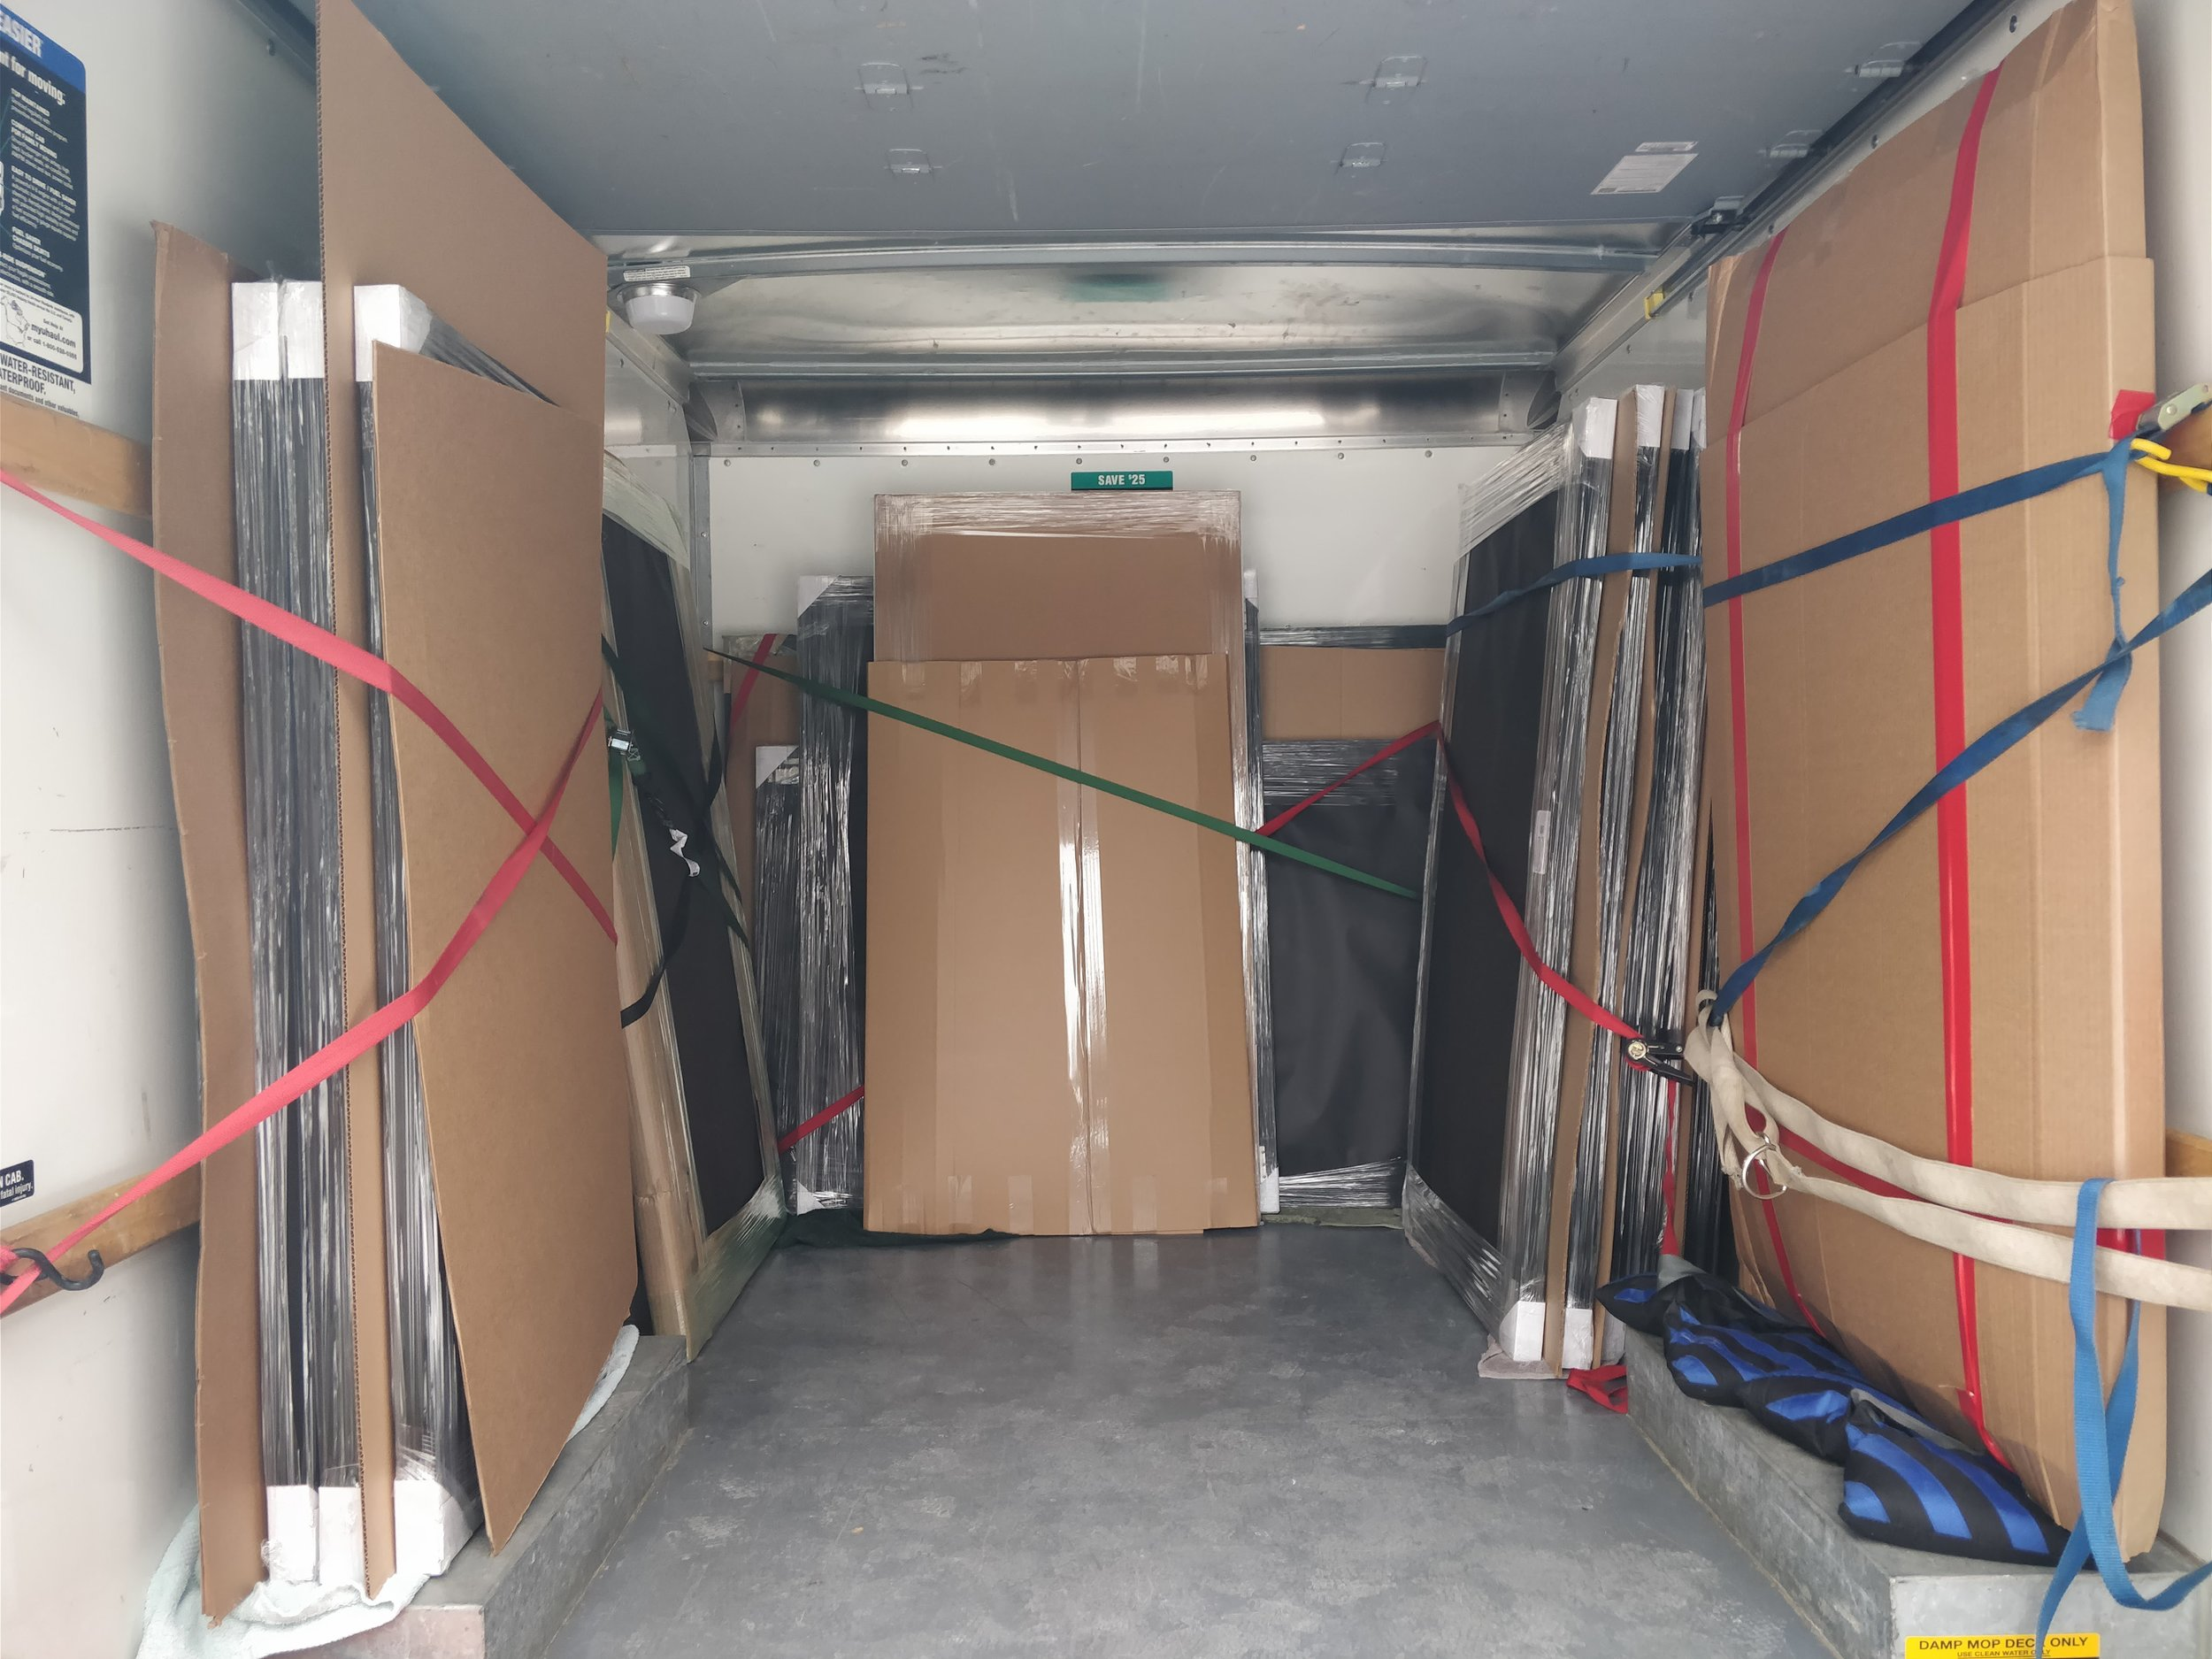 """Check out the delivery van loaded up with 16 custom photos ready for delivery! Photos ranged in size up to 60""""x40""""... What a busy day!"""